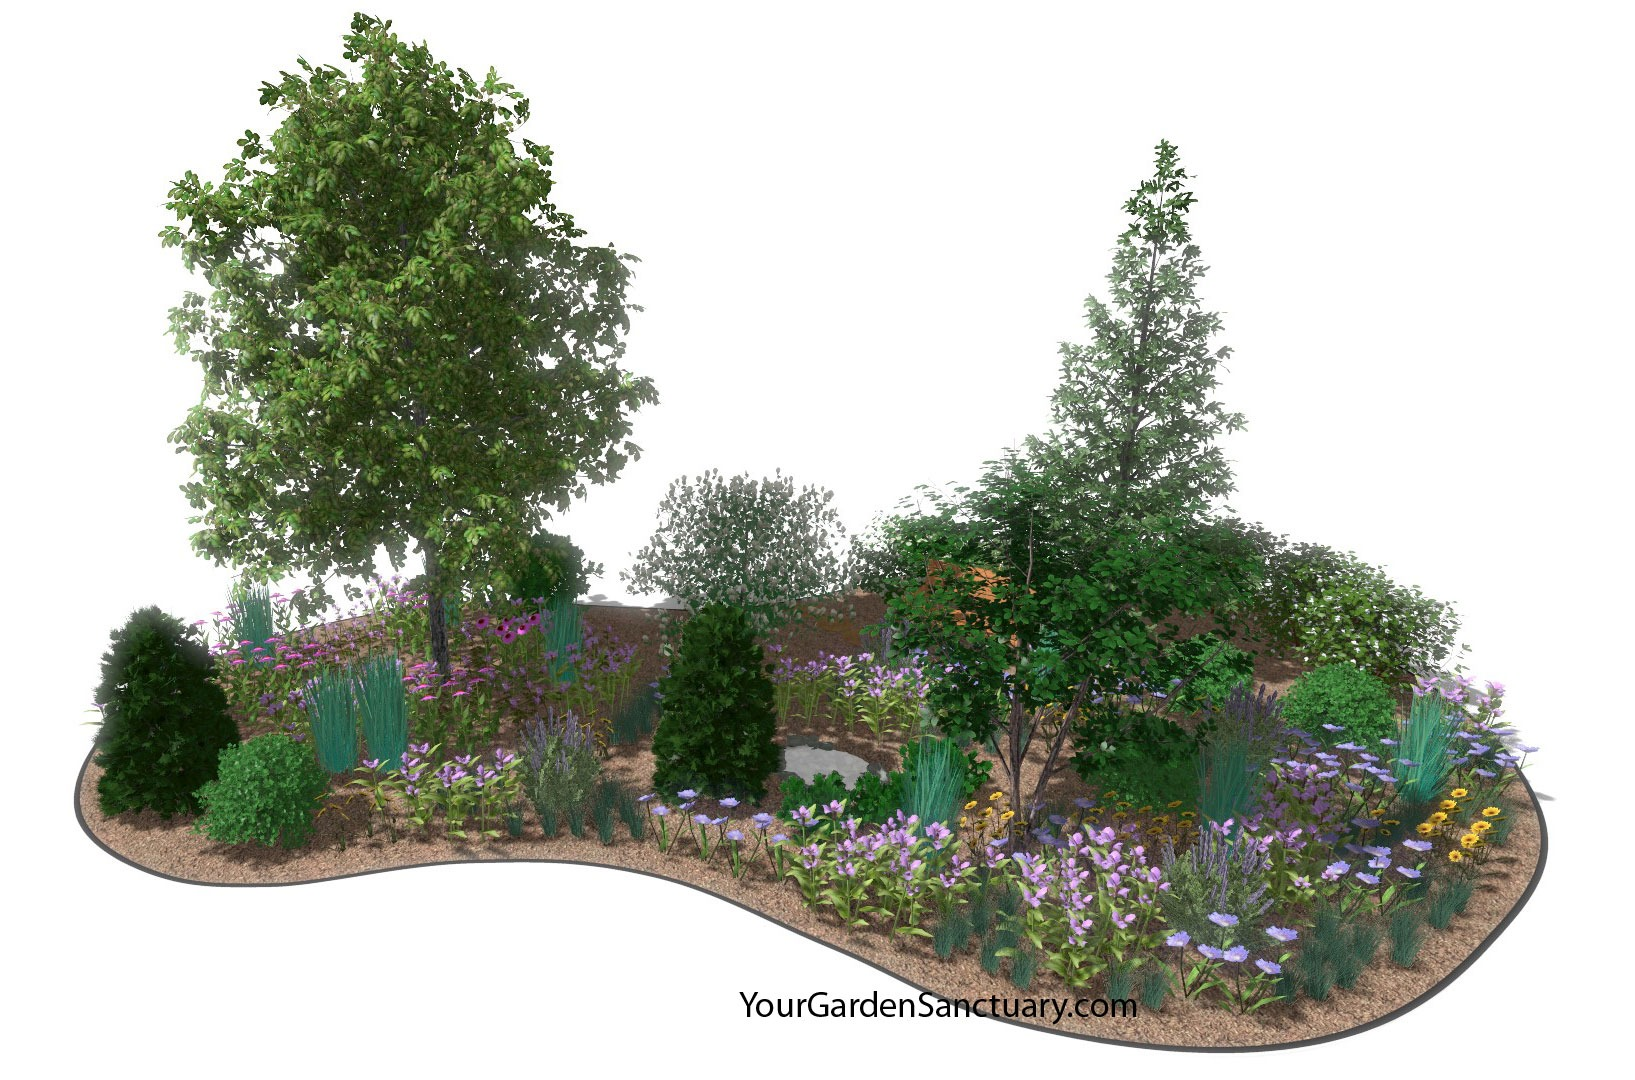 Concept Rendering of Ecological Planting Plan completed